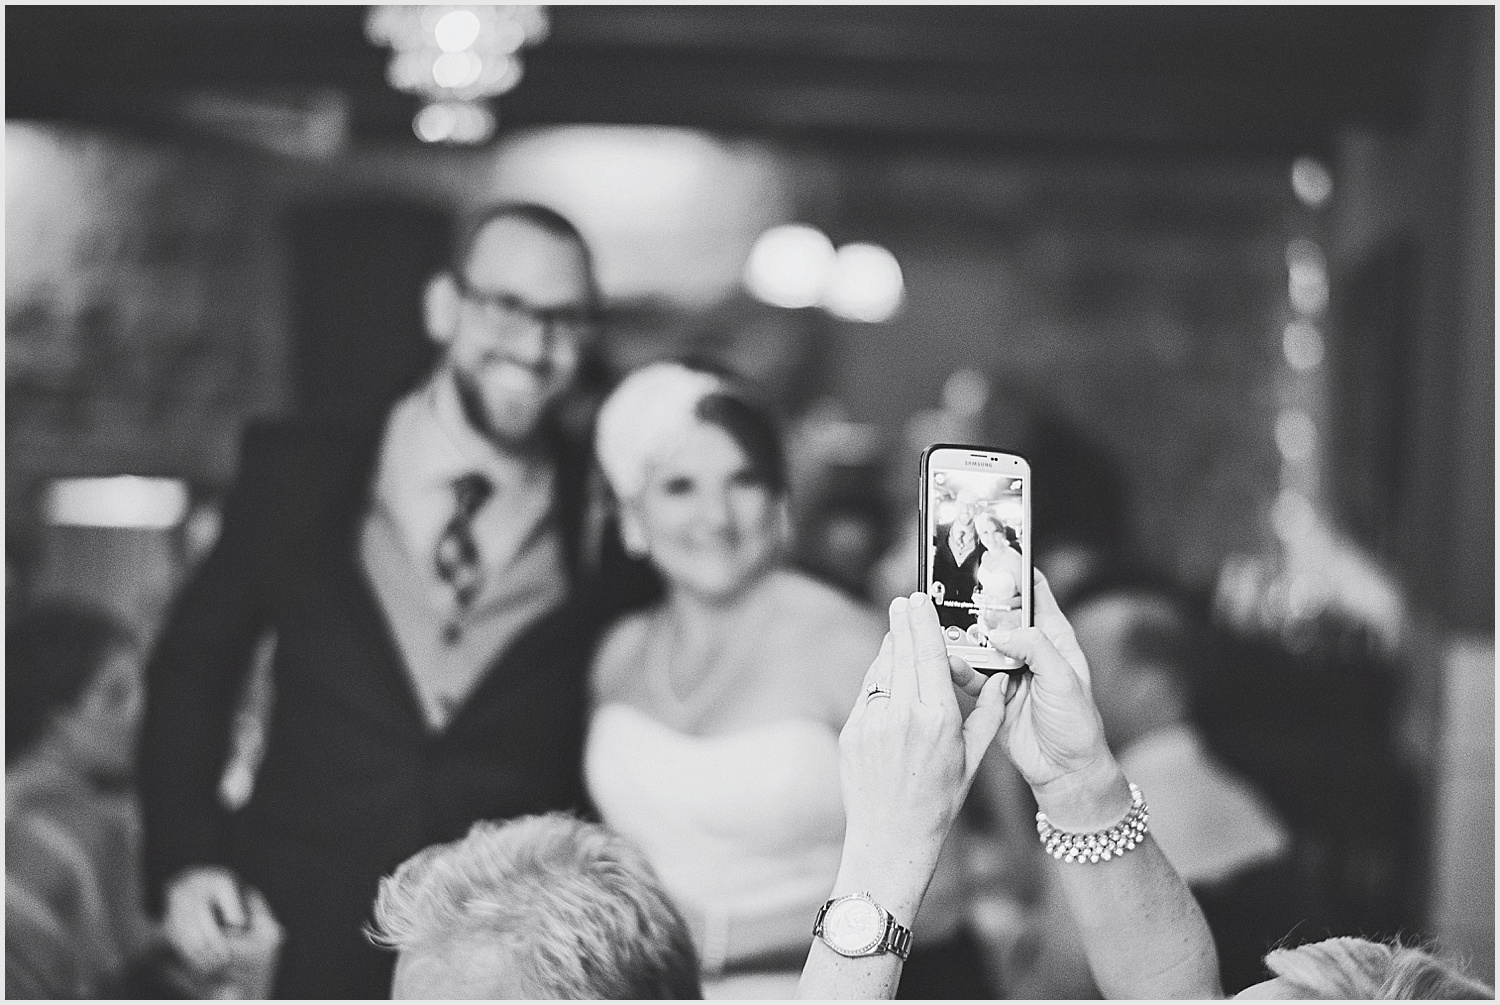 stpaul_wedding_lucas_botz_photography_028.jpg